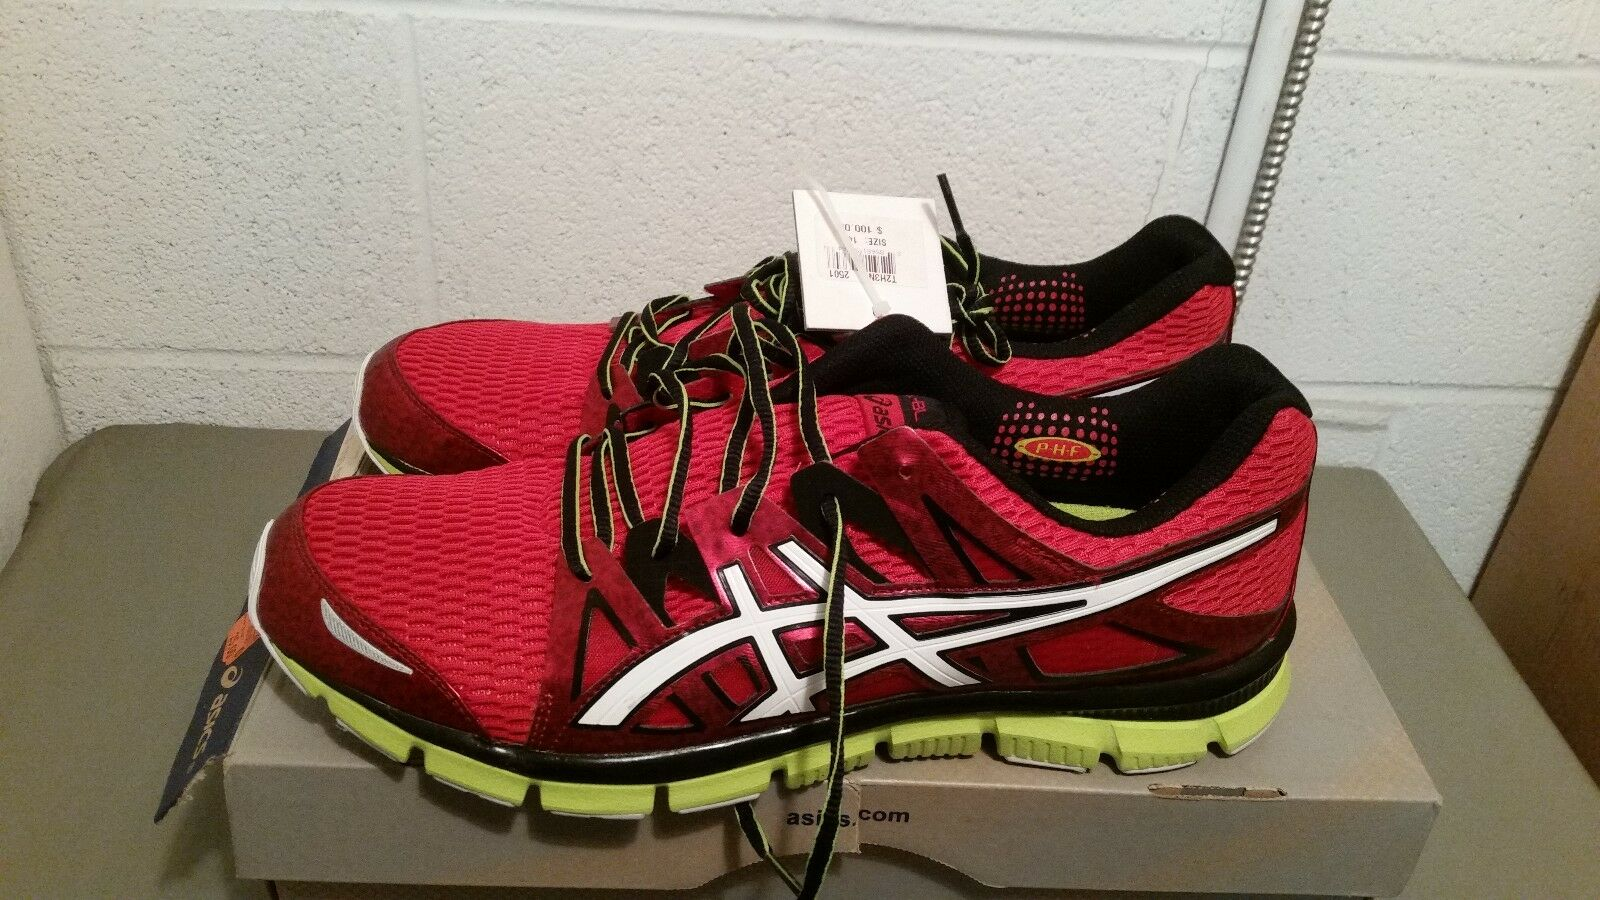 New ASICS Men's Red White Lime Gel Athletic shoes